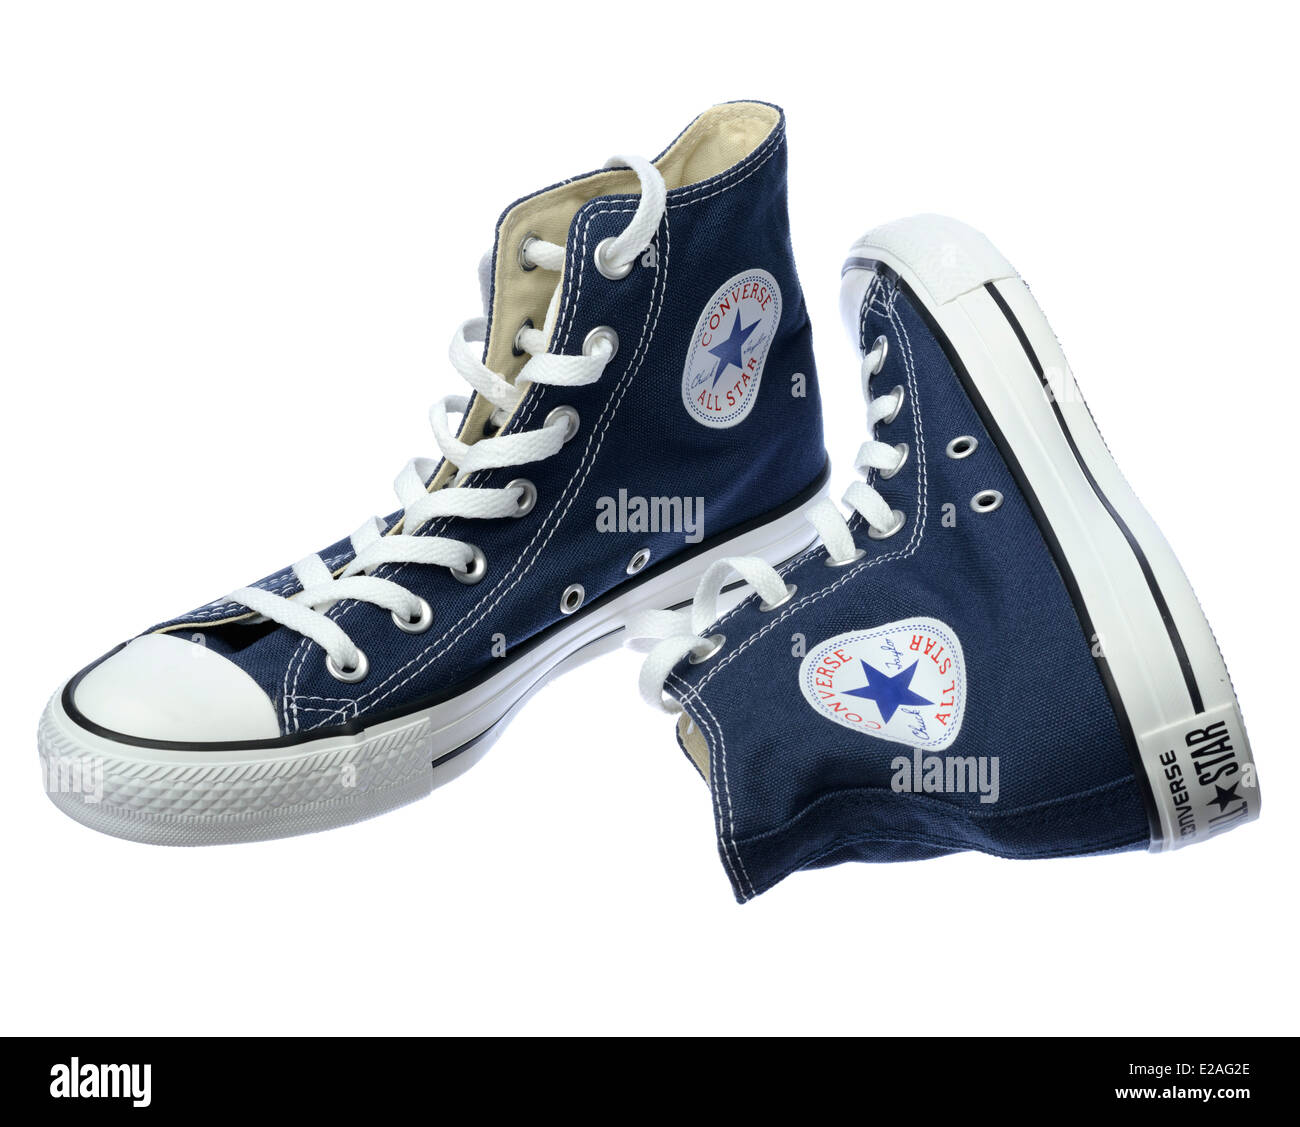 converse company background Converse offers the complete sneaker, clothing, gear & collaborations find chuck taylor all stars, cons, & jack purcells shop converse shoes today.